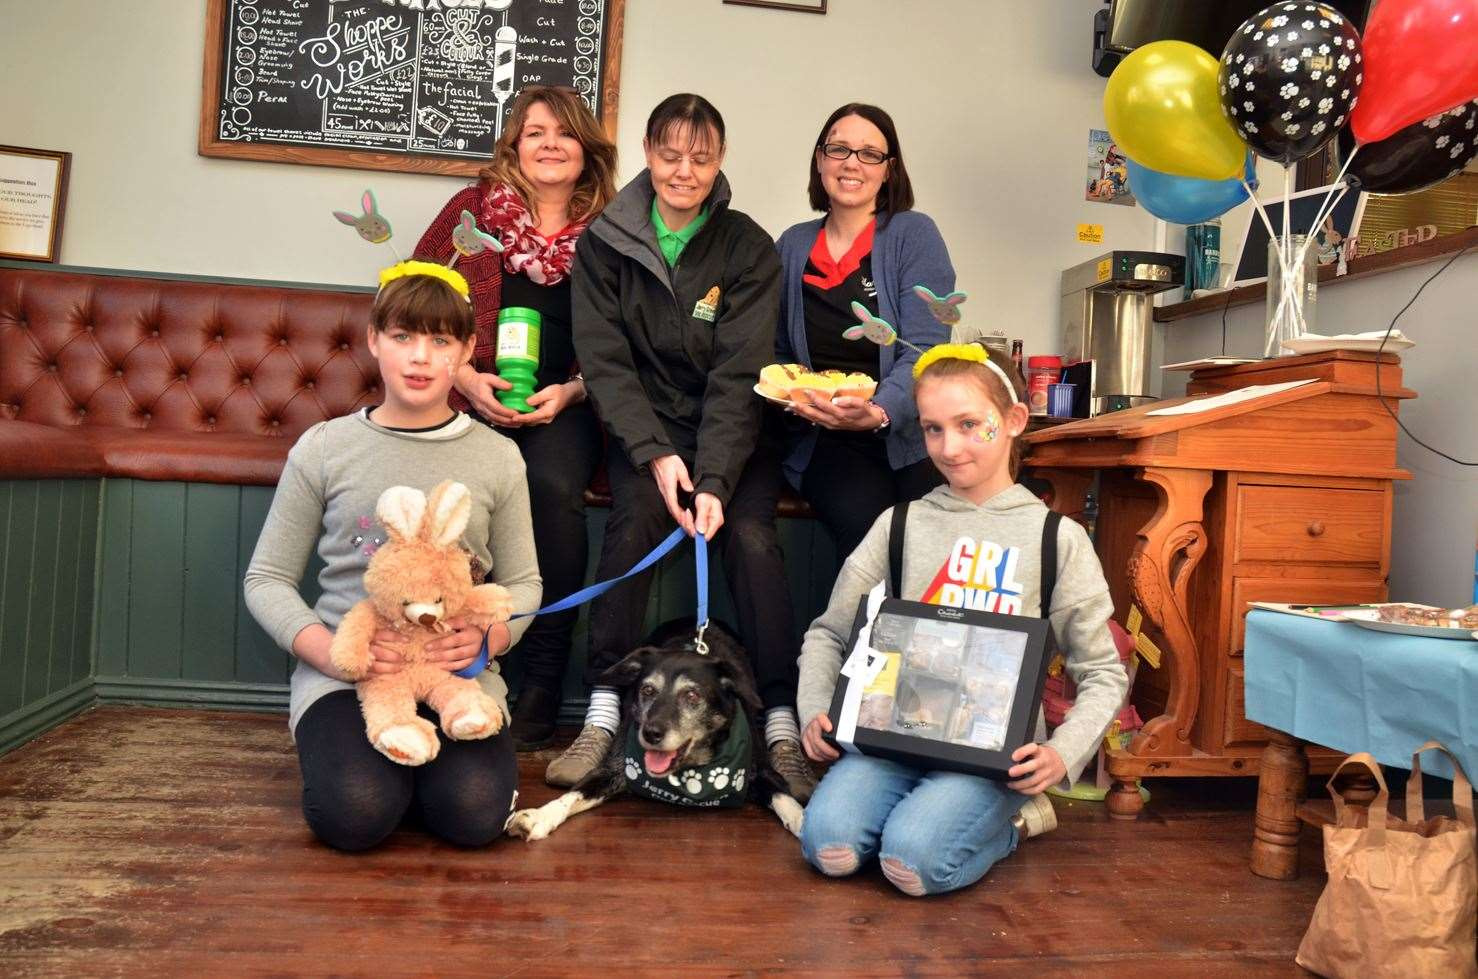 The Barber Shoppe in Holbeach present money raised from their raffle to Jerry Green. Pictured: Staff Deborah Wright, Jerry Green community fundraiser Liz Hinckley with 'ambassadog' Stella and Karen Elsey. Front: Leah Eley and Chloe Eynott. (8546874)